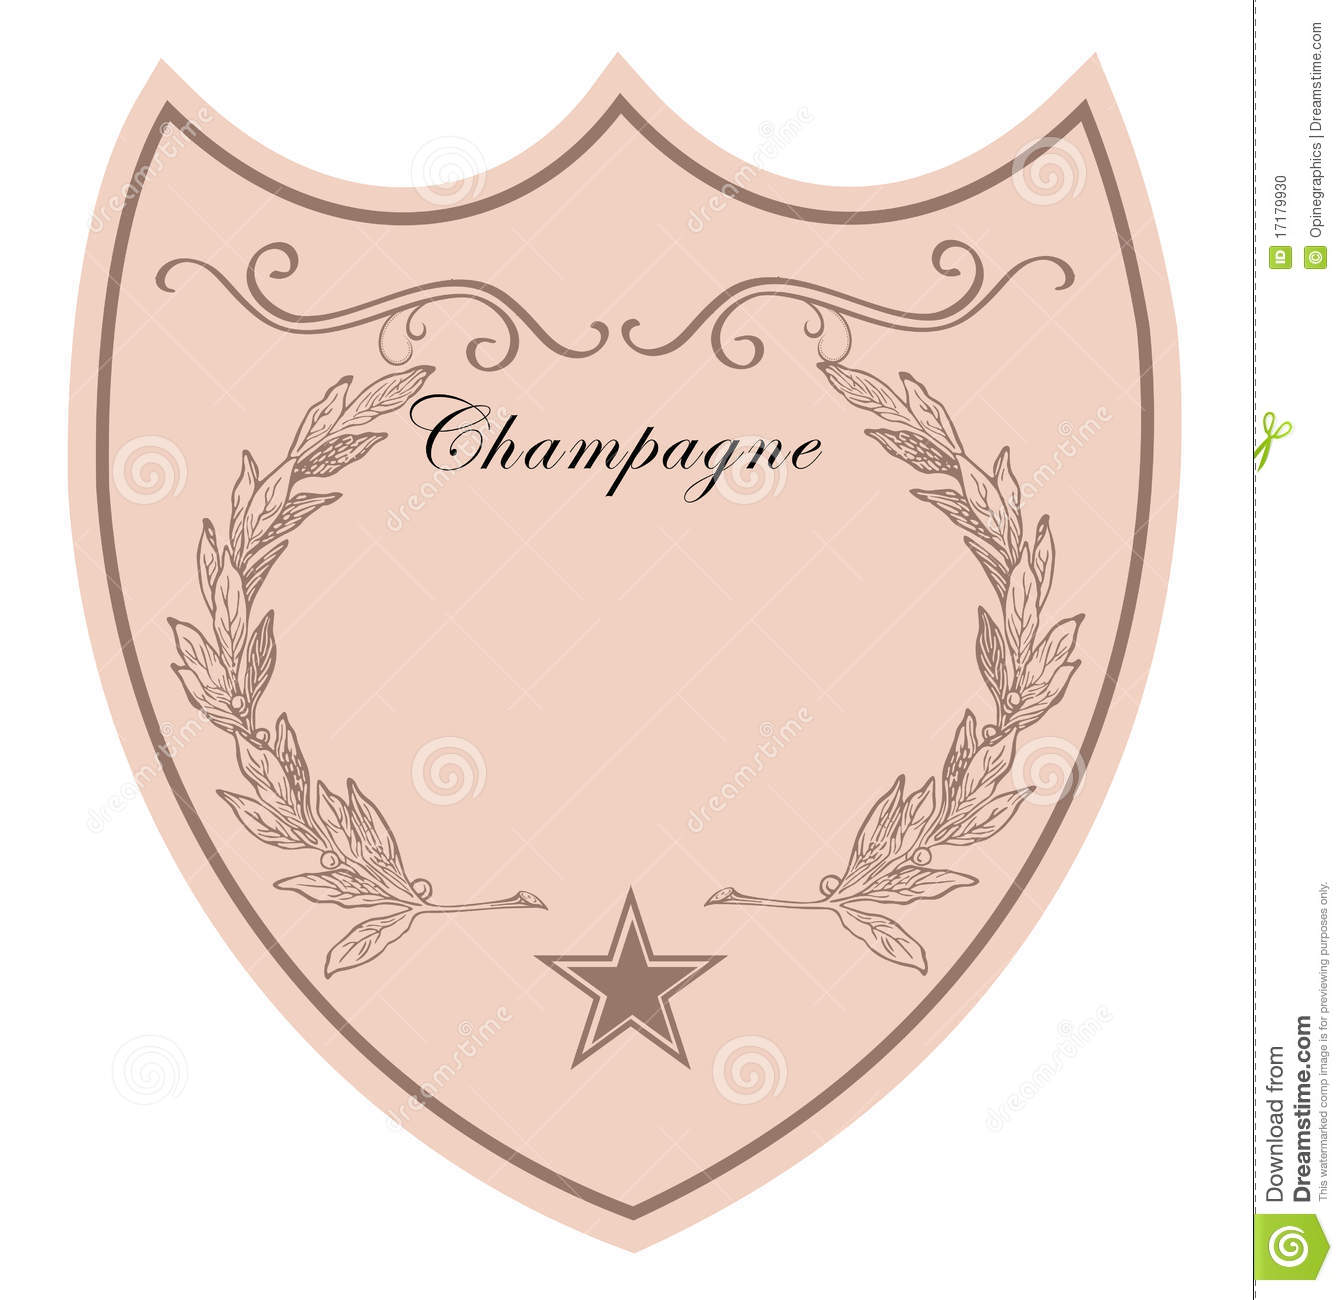 Champagne Label Stock Photo Image 17179930